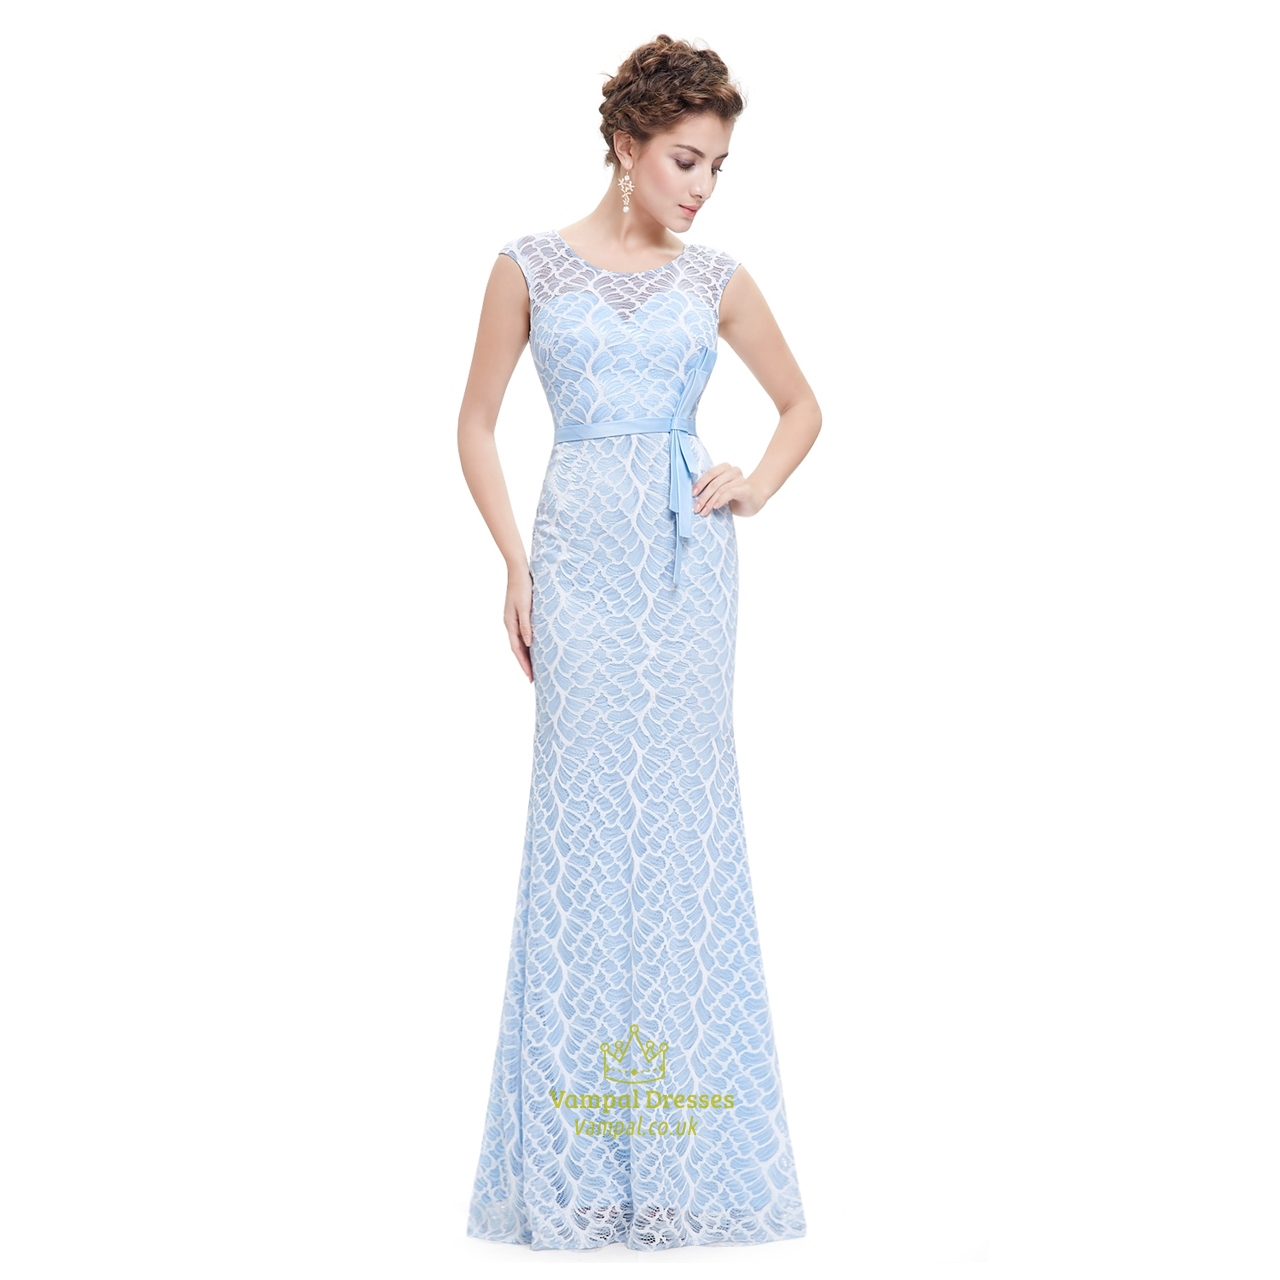 Sky Blue Floor Length Sleeveless Mermaid Dress With Lace Embellished ...